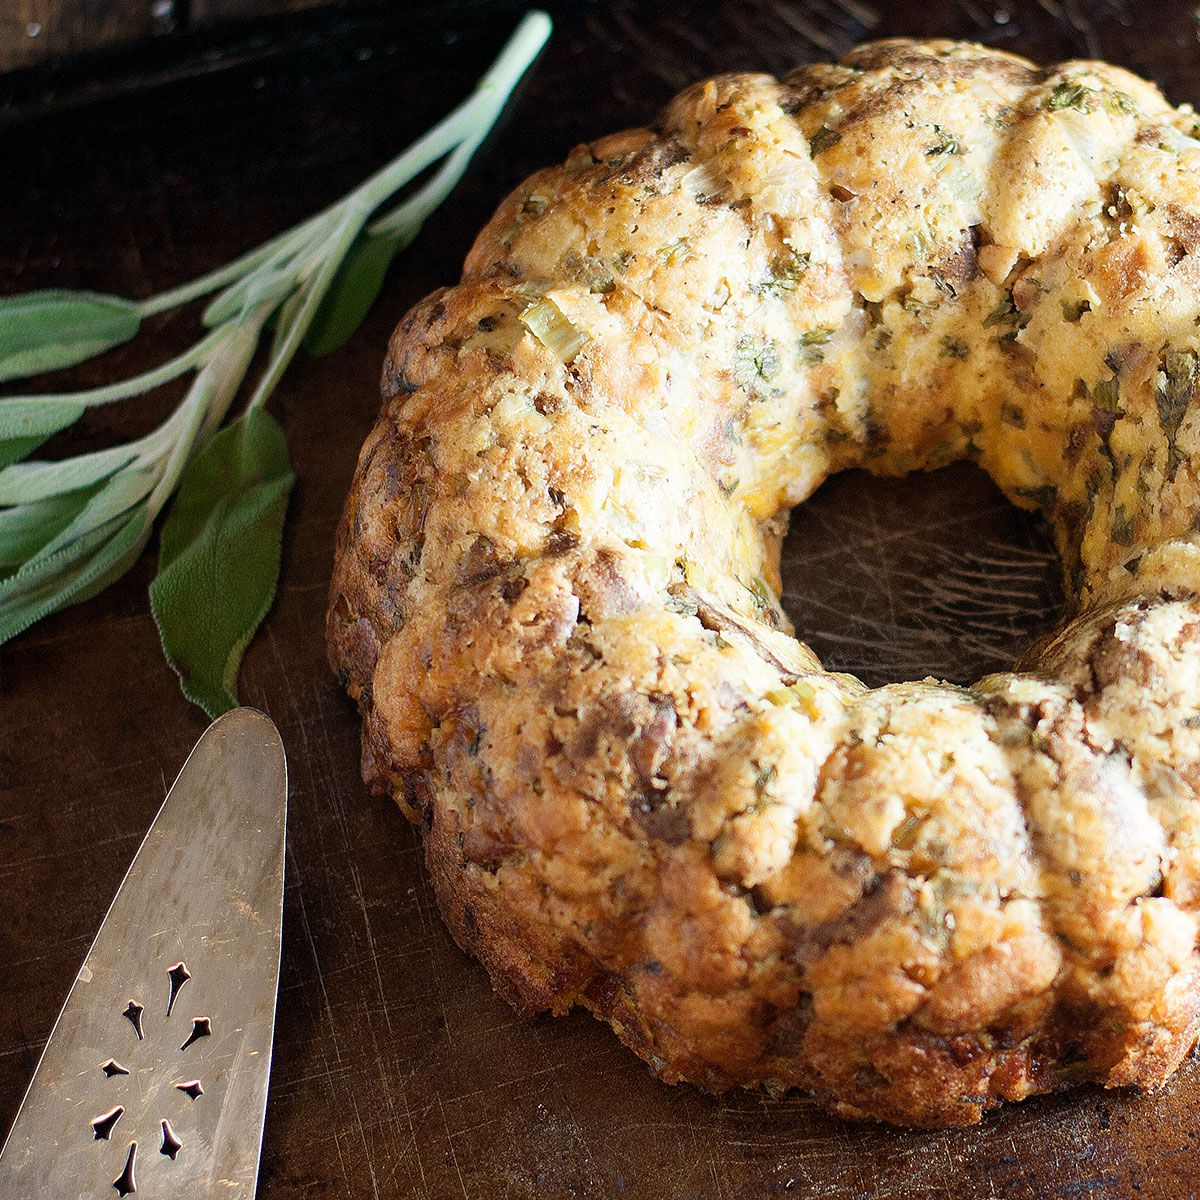 Stuffing in a bundt pan